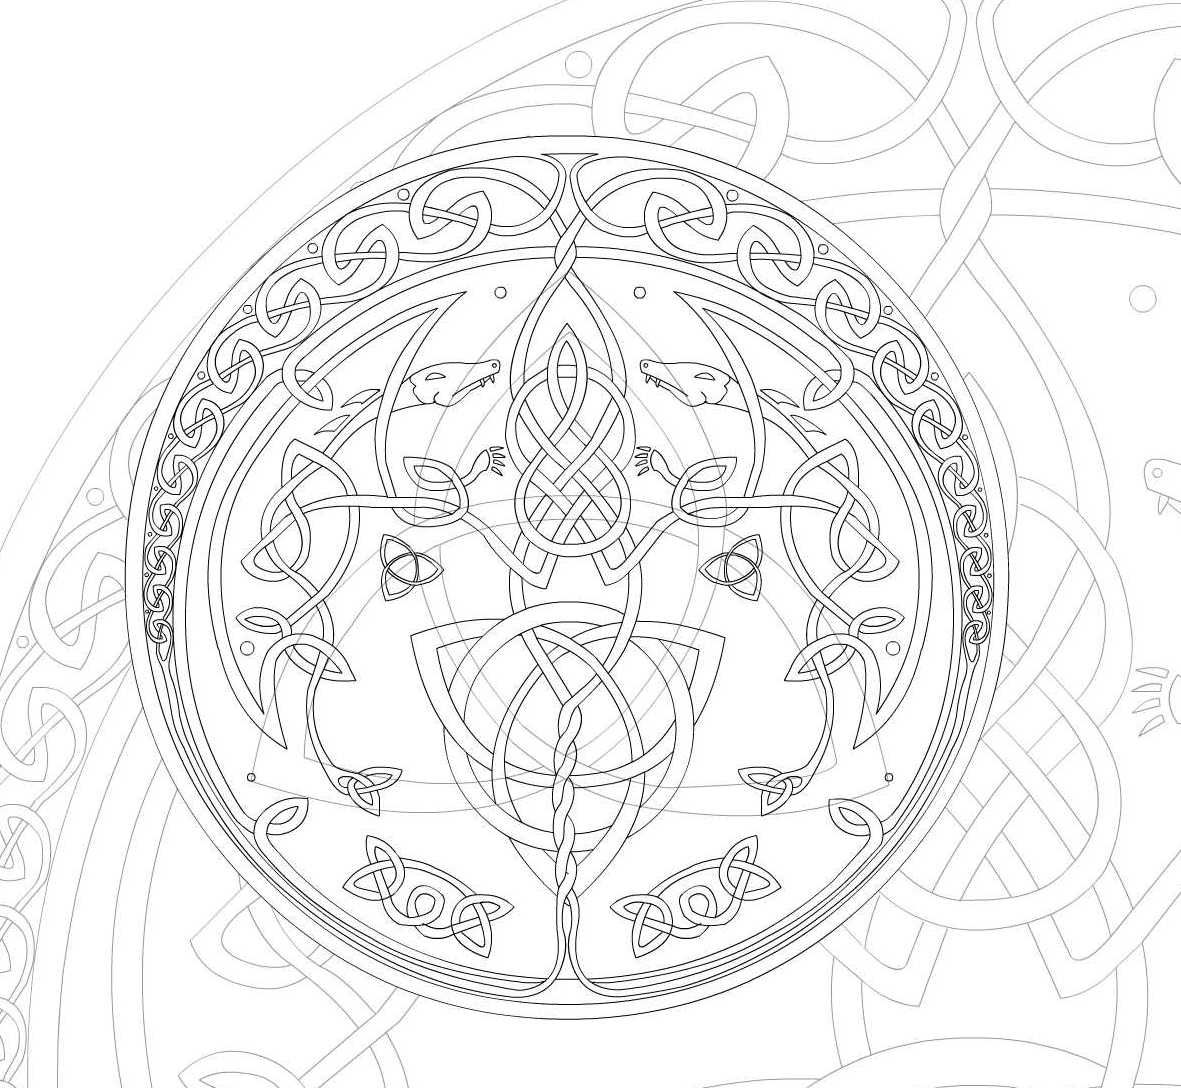 Celtic_style_mandala_by_simis.jpg (1181×1088) | line art | Pinterest ...